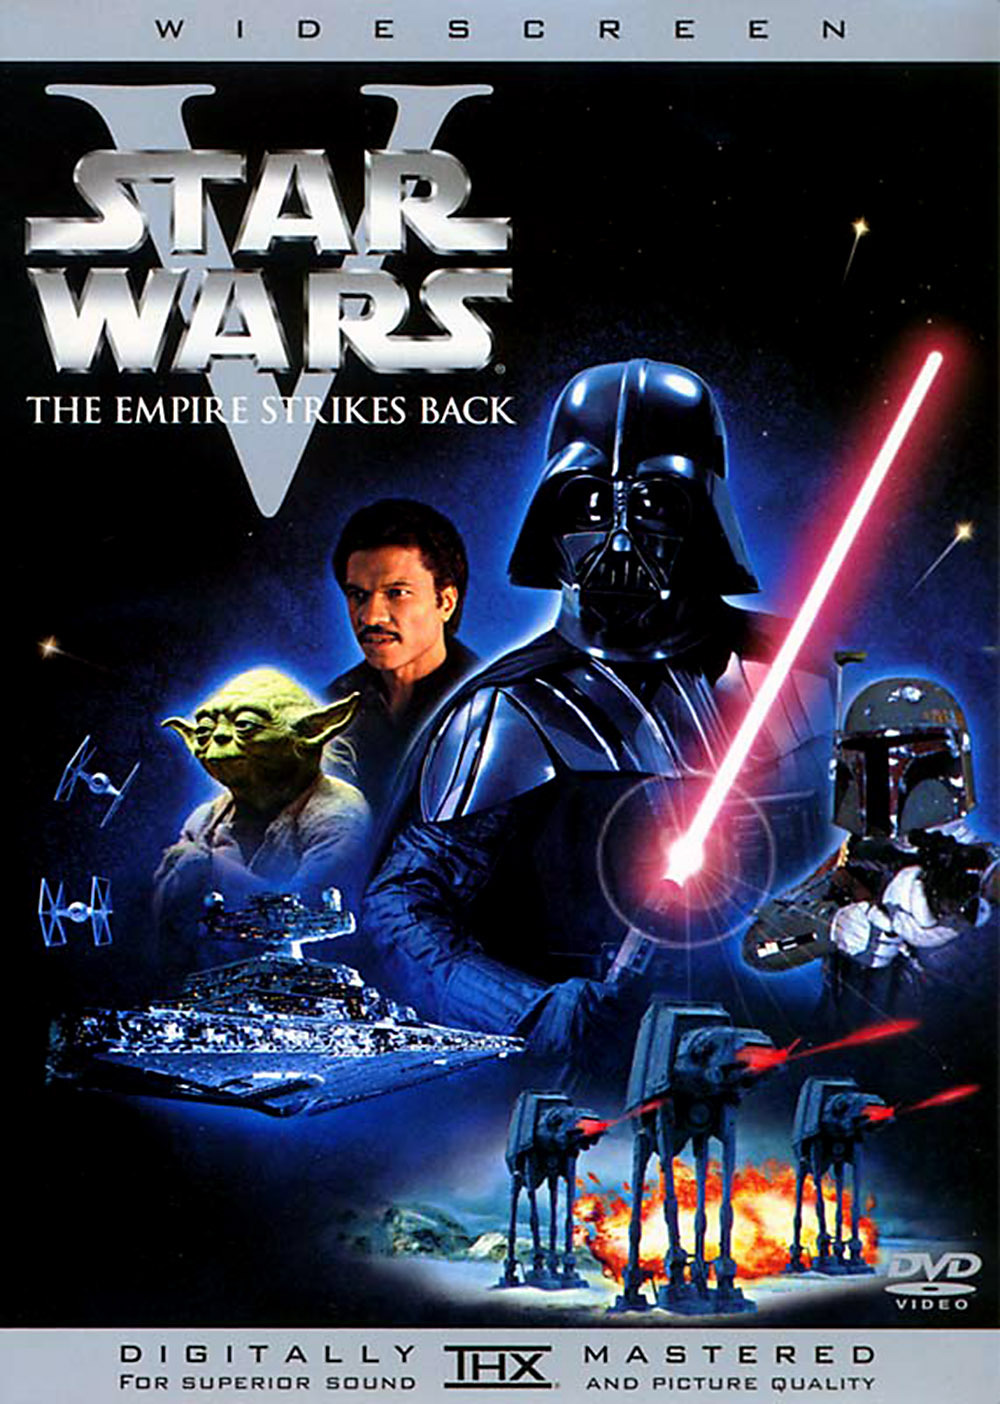 Star Wars The Empire Strikes Back Wallpapers Video Game Hq Star